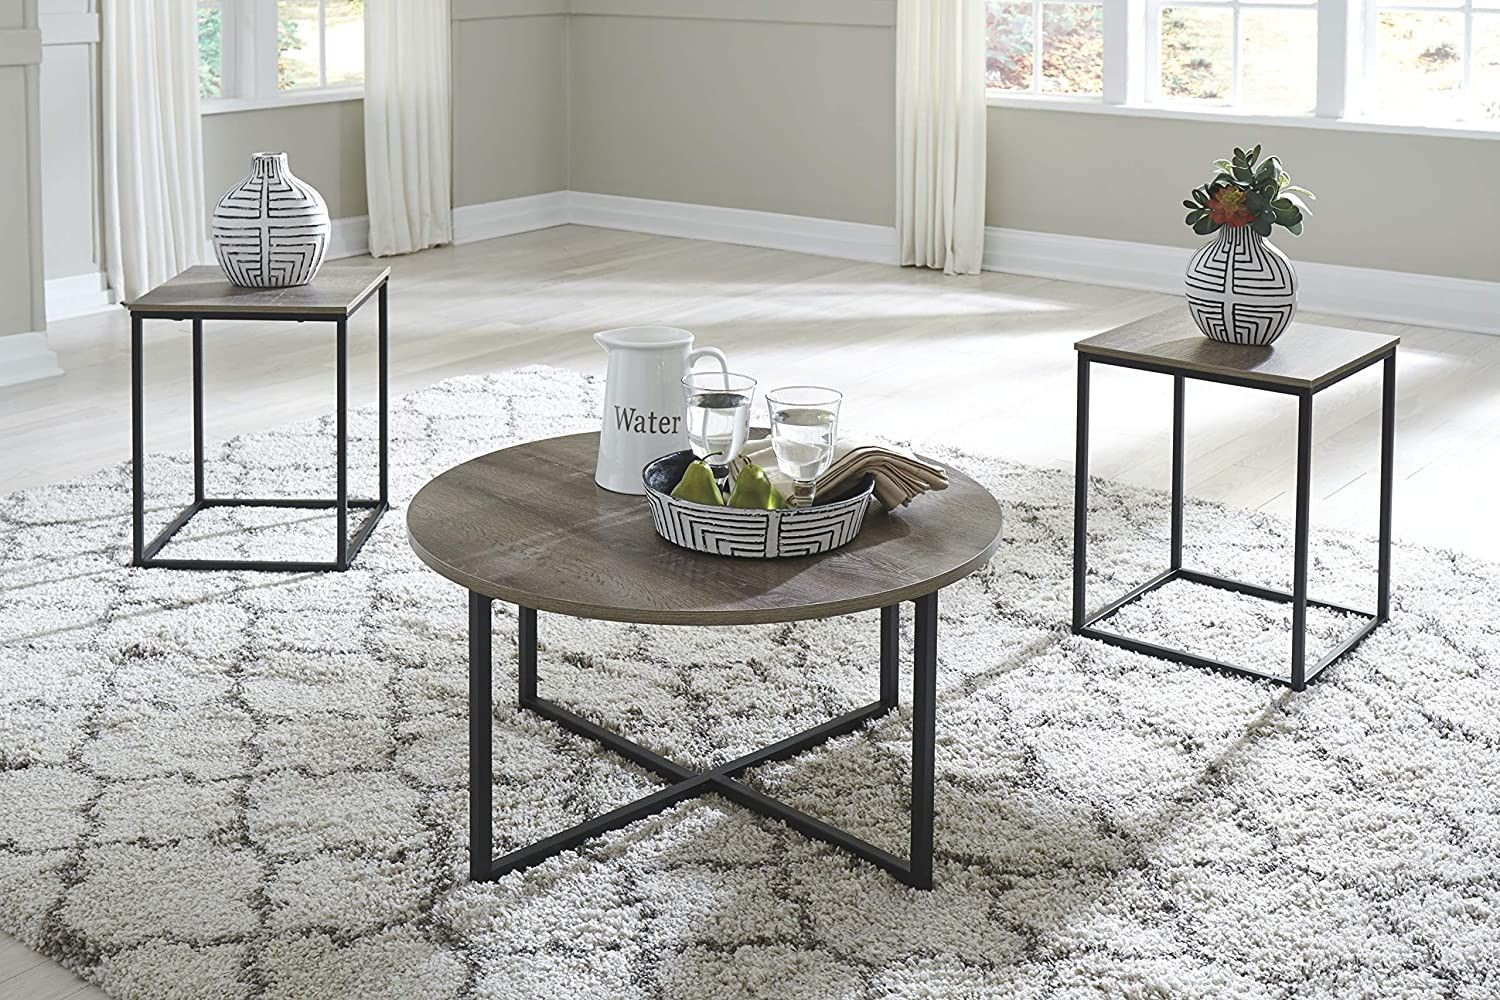 Inspired Home Marley 2 Piece 31 In Silver Gray Medium Round Stone Coffee Table Set With Nesting Tables Ct131 24ws Hd The Home Depot Coffee Table Nesting Coffee Tables Silver Coffee Table [ 1000 x 1000 Pixel ]